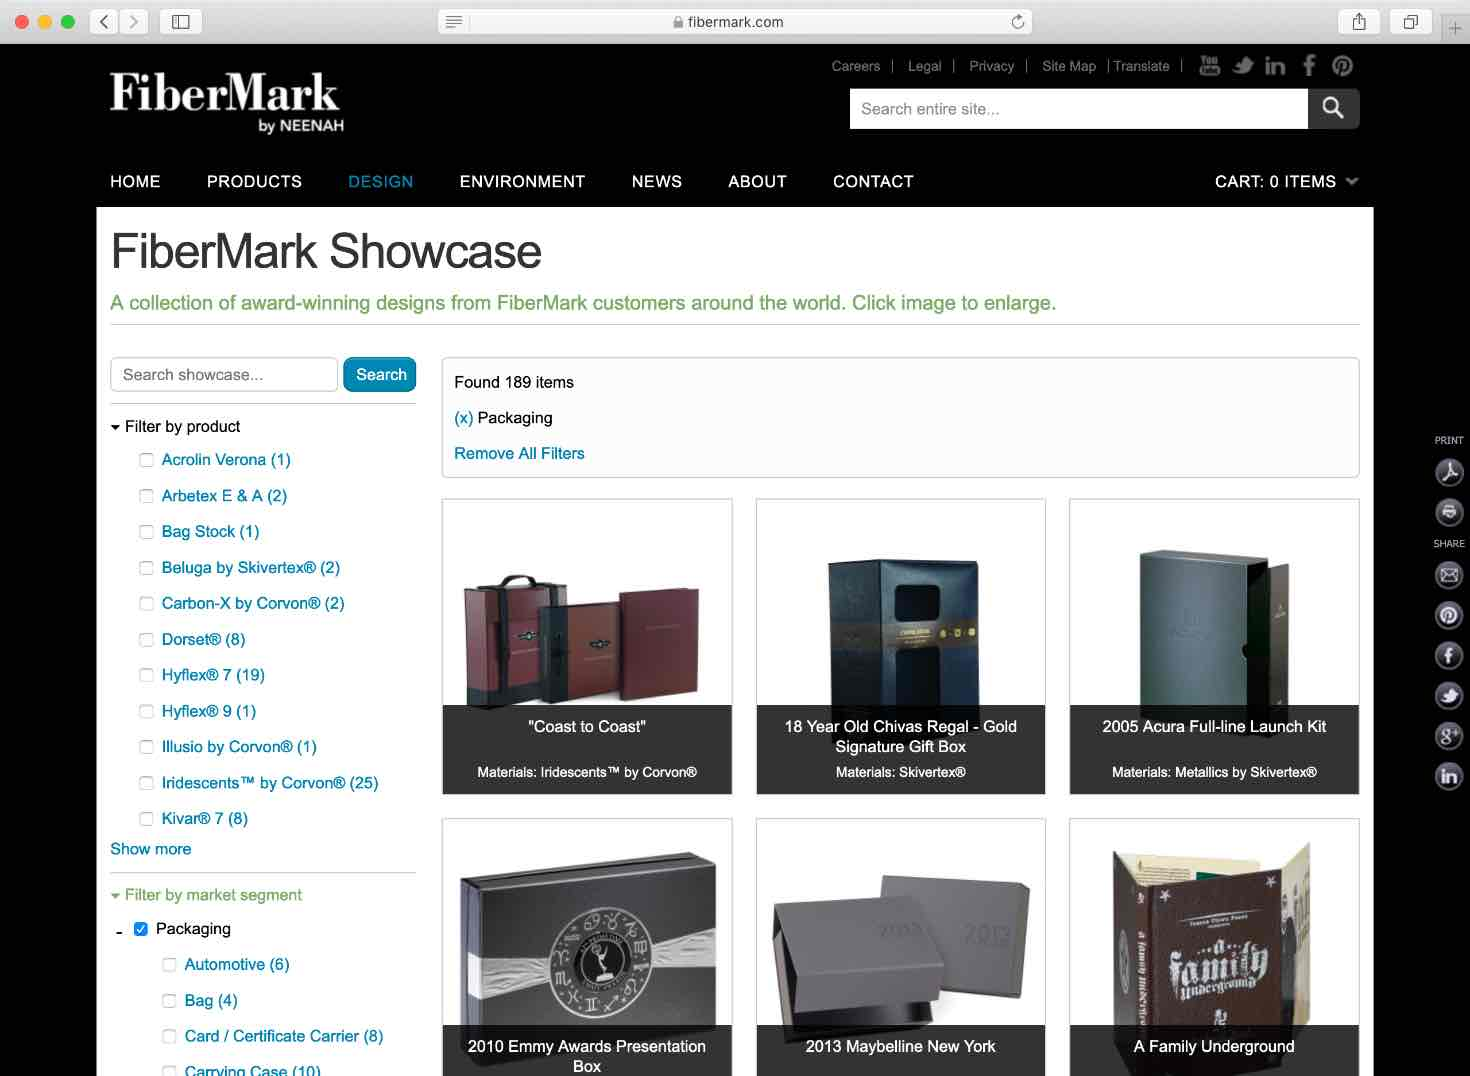 FiberMark Showcase filters page